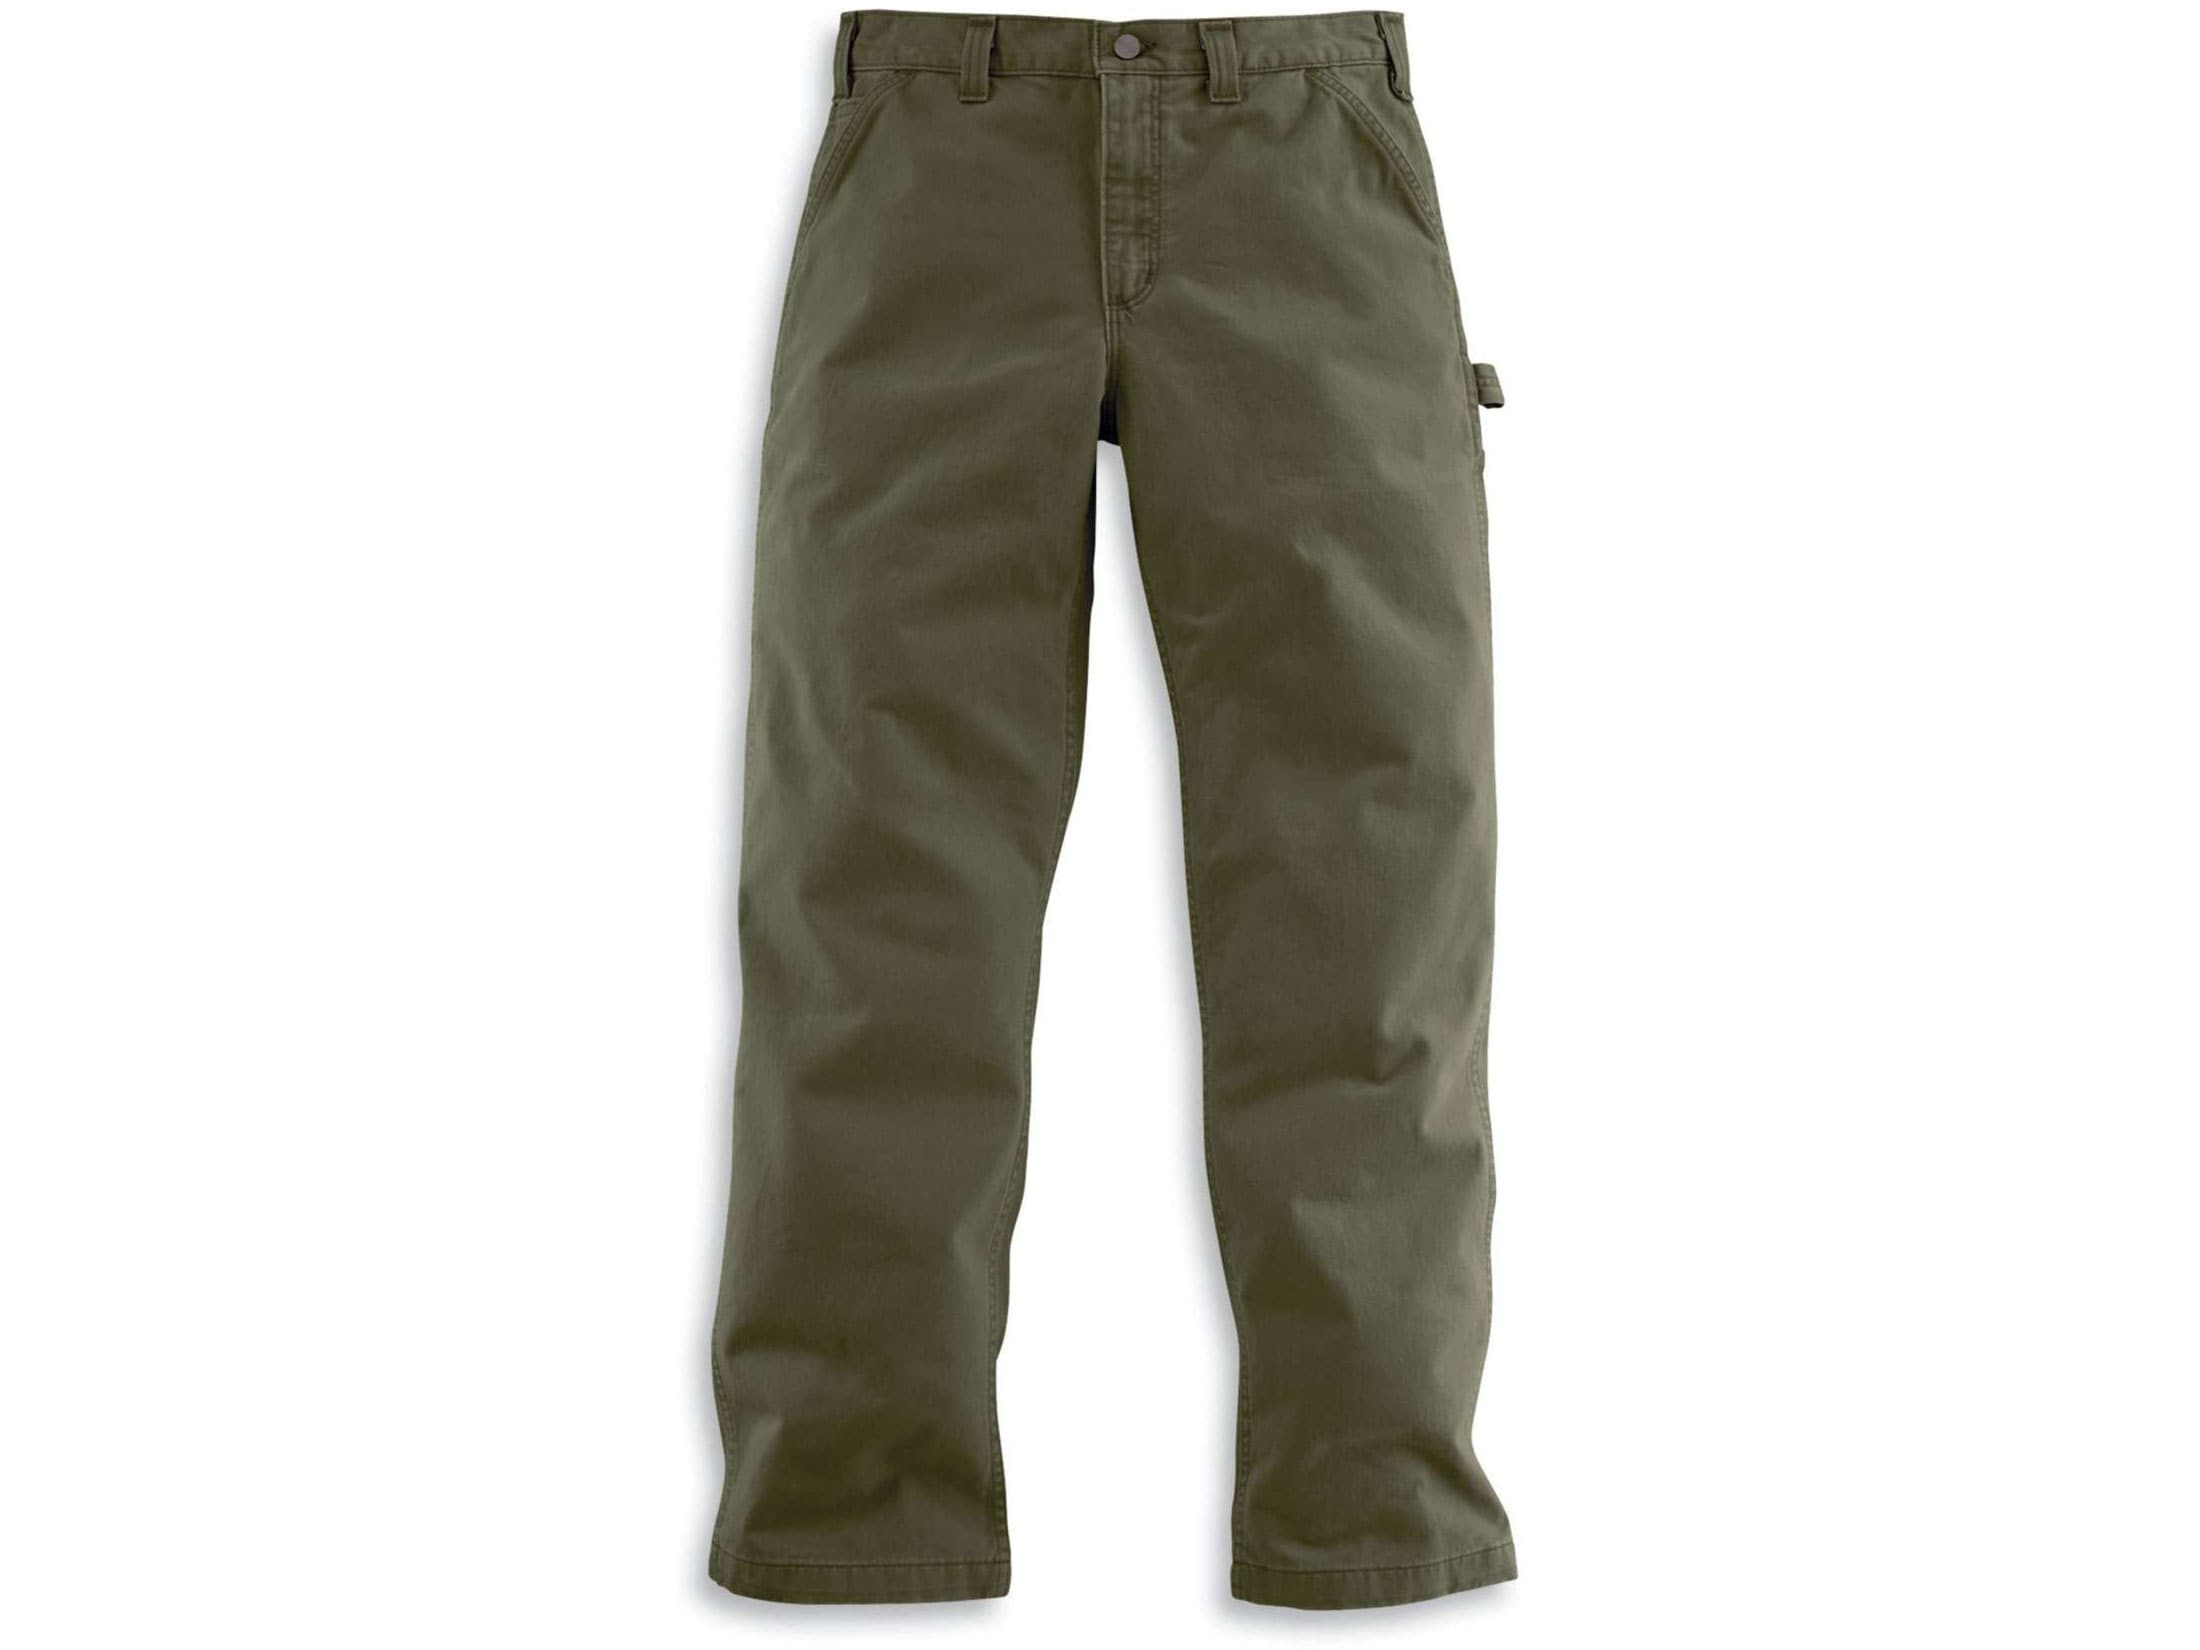 Charcoal or Khaki Carhartt Carpenter Jean Loose or Relaxed Dungaree Pants Brown